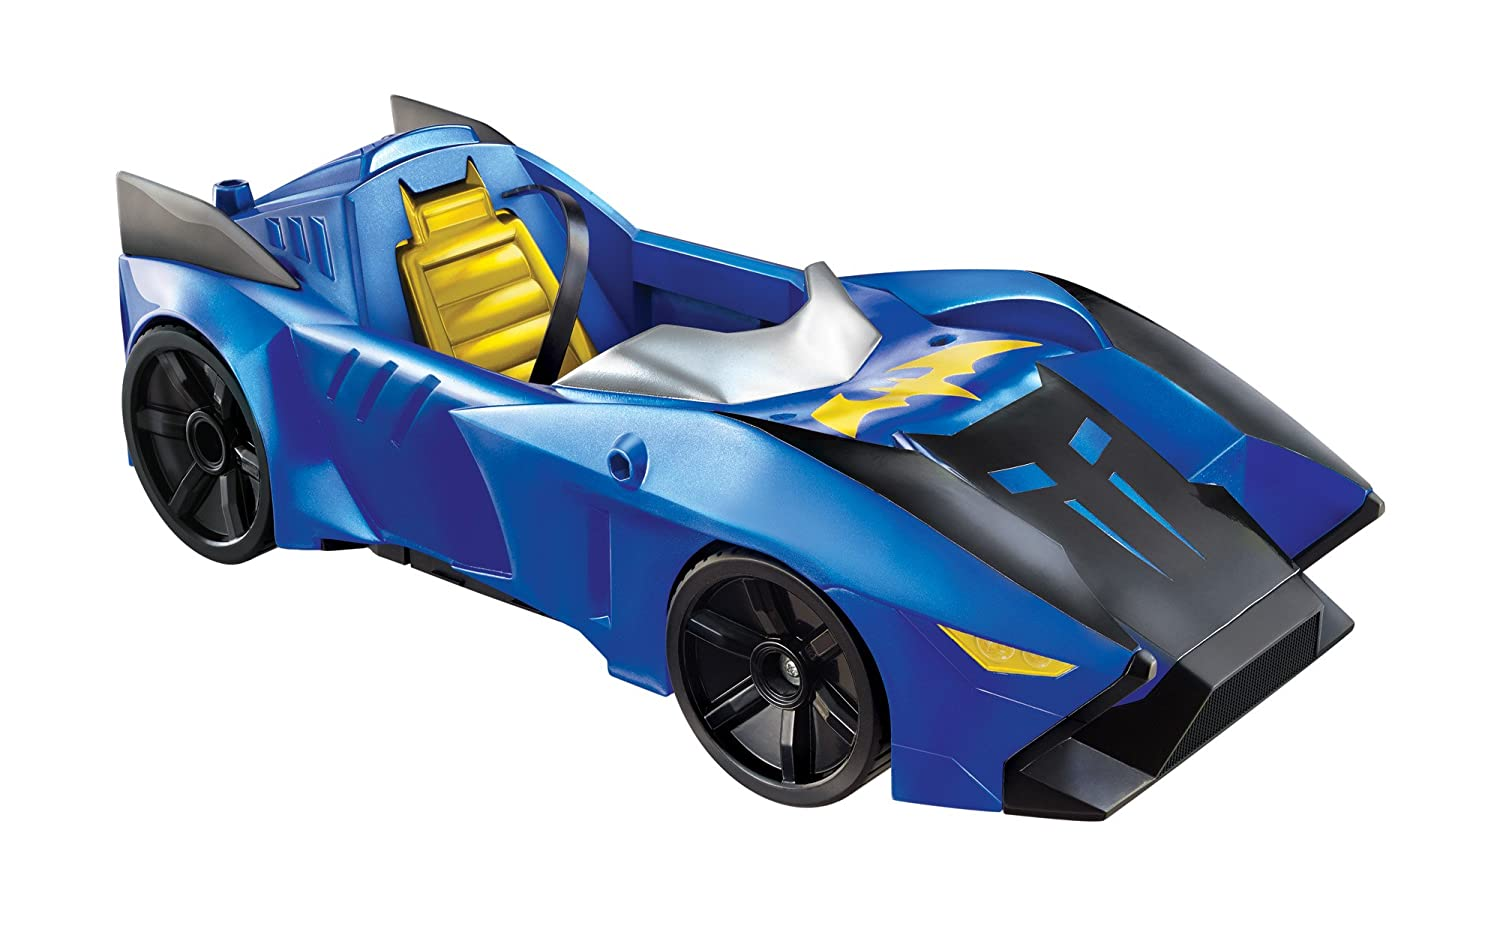 Amazon.com: Mattel Batman Unlimited Batmobile Vehicle: Toys & Games